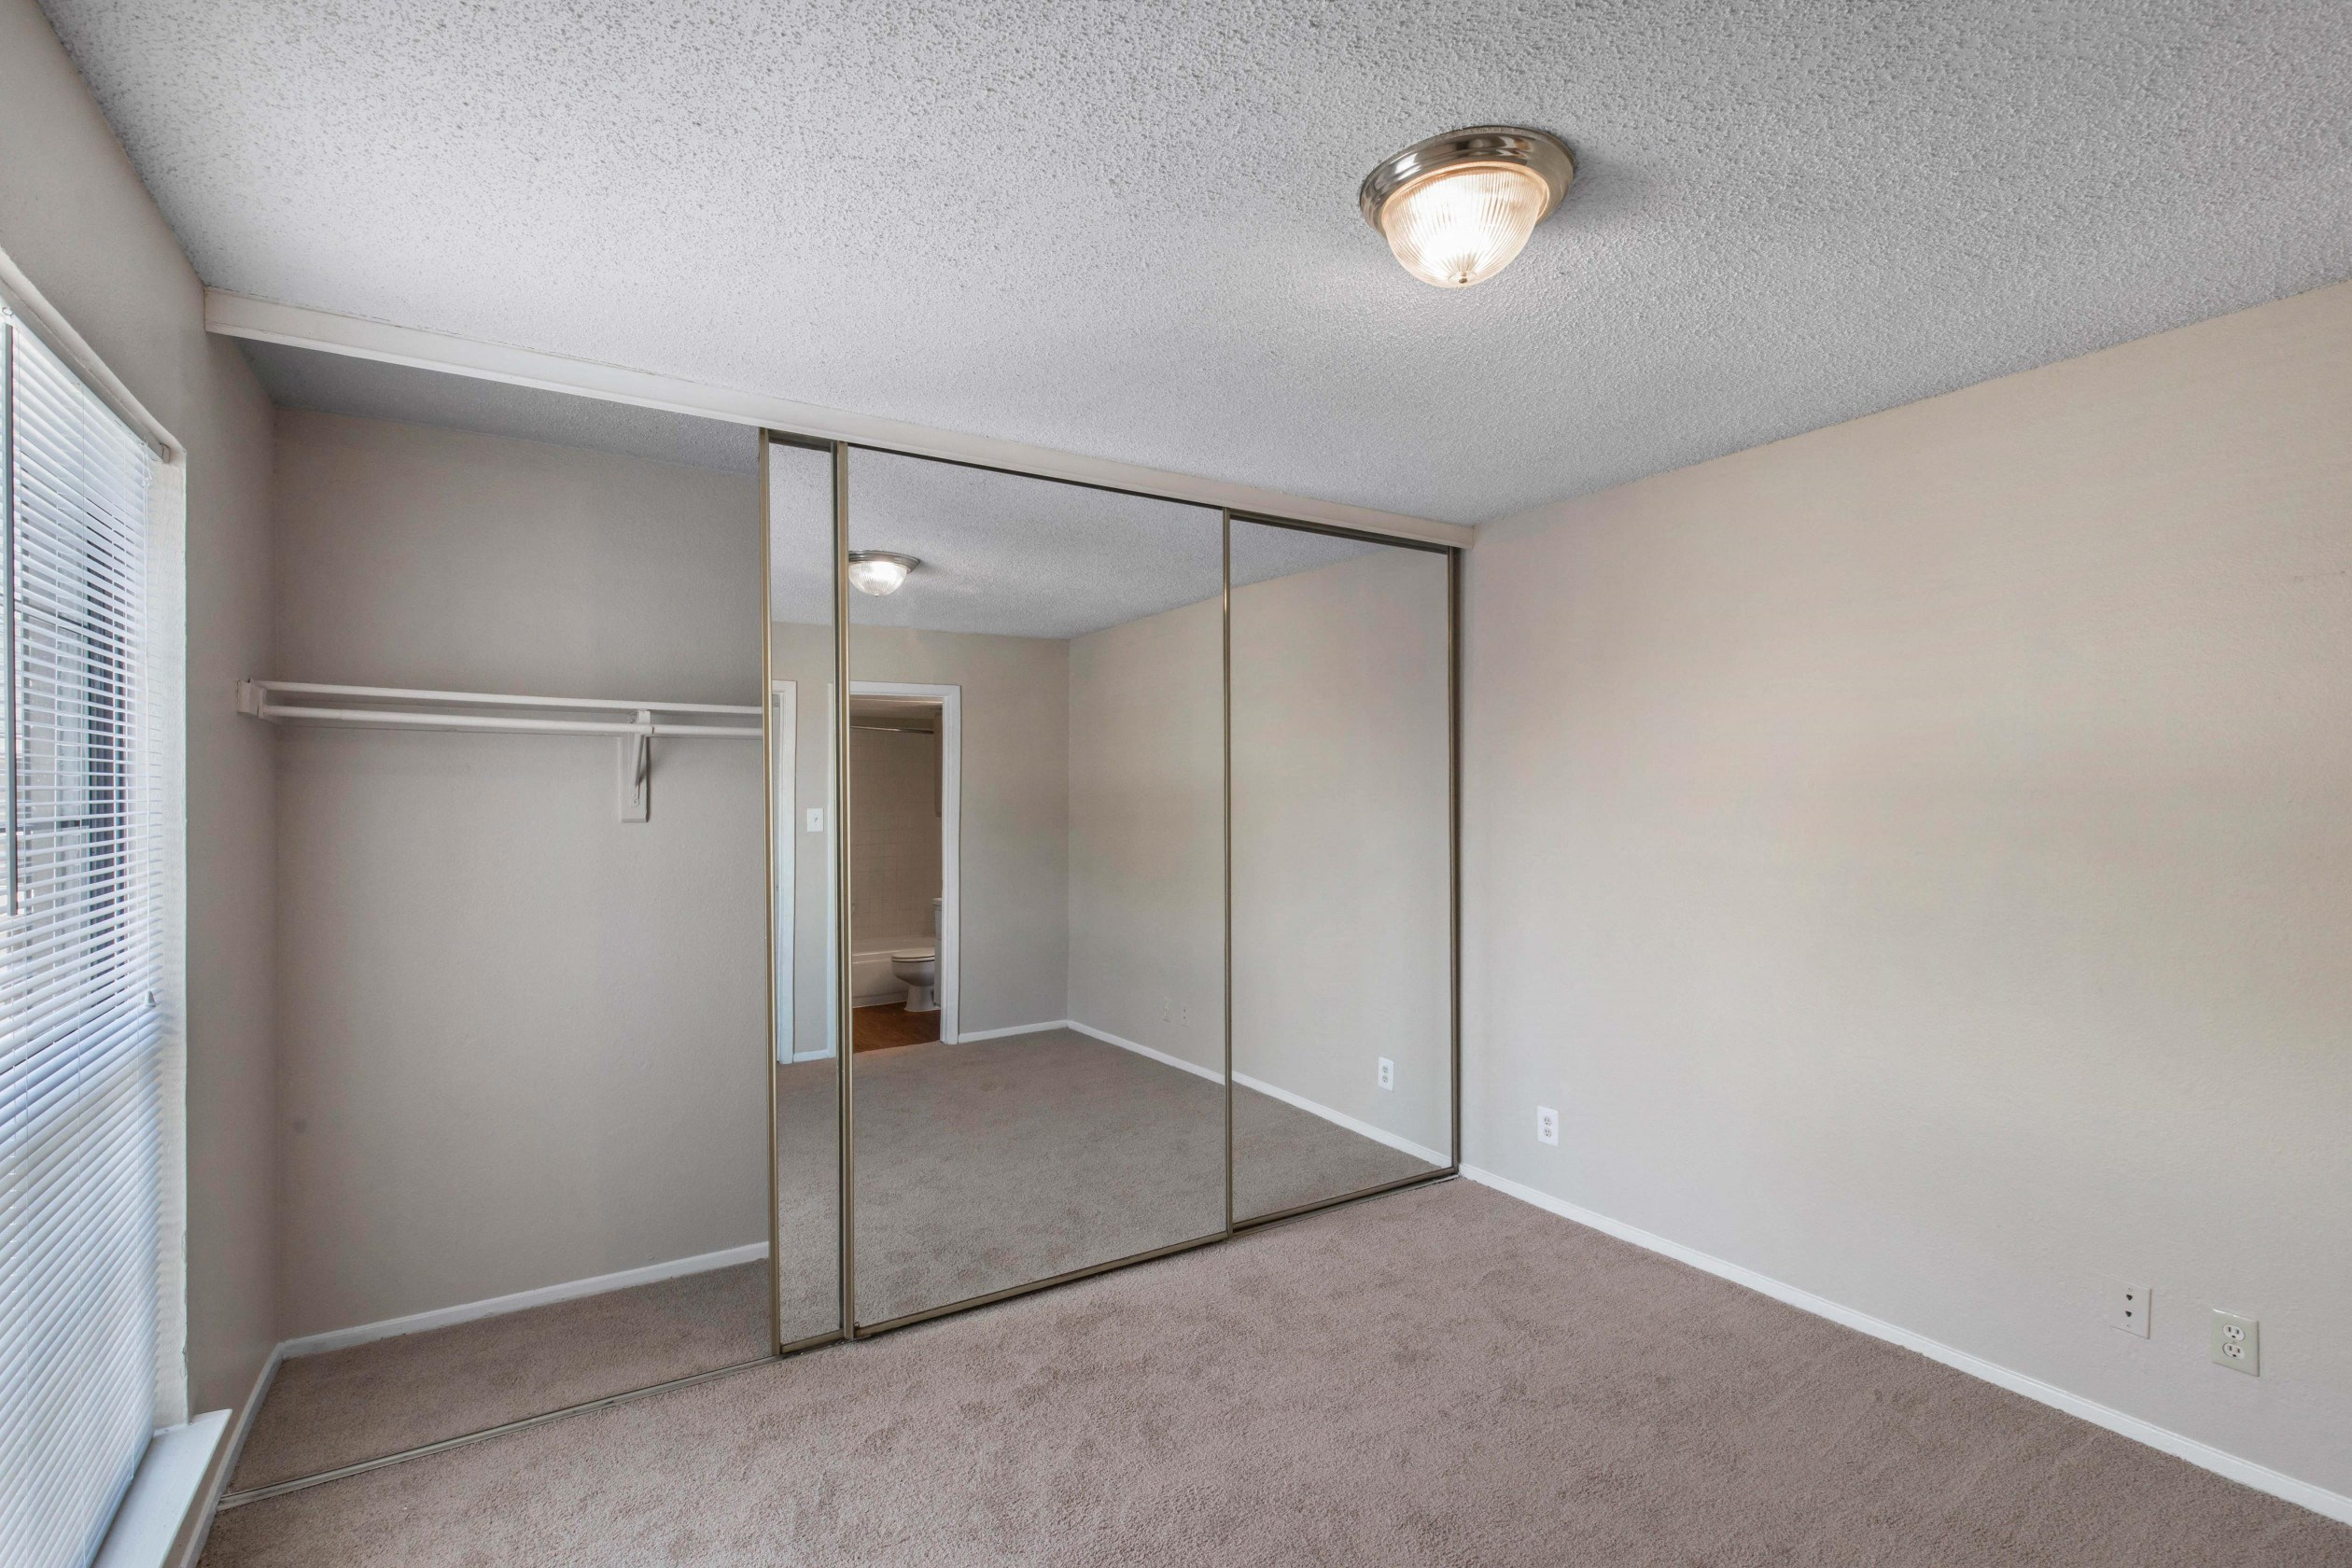 Bedroom with wall to wall carpet, eggshell white walls, bright white trim, bulb light, and mirrored closet doors